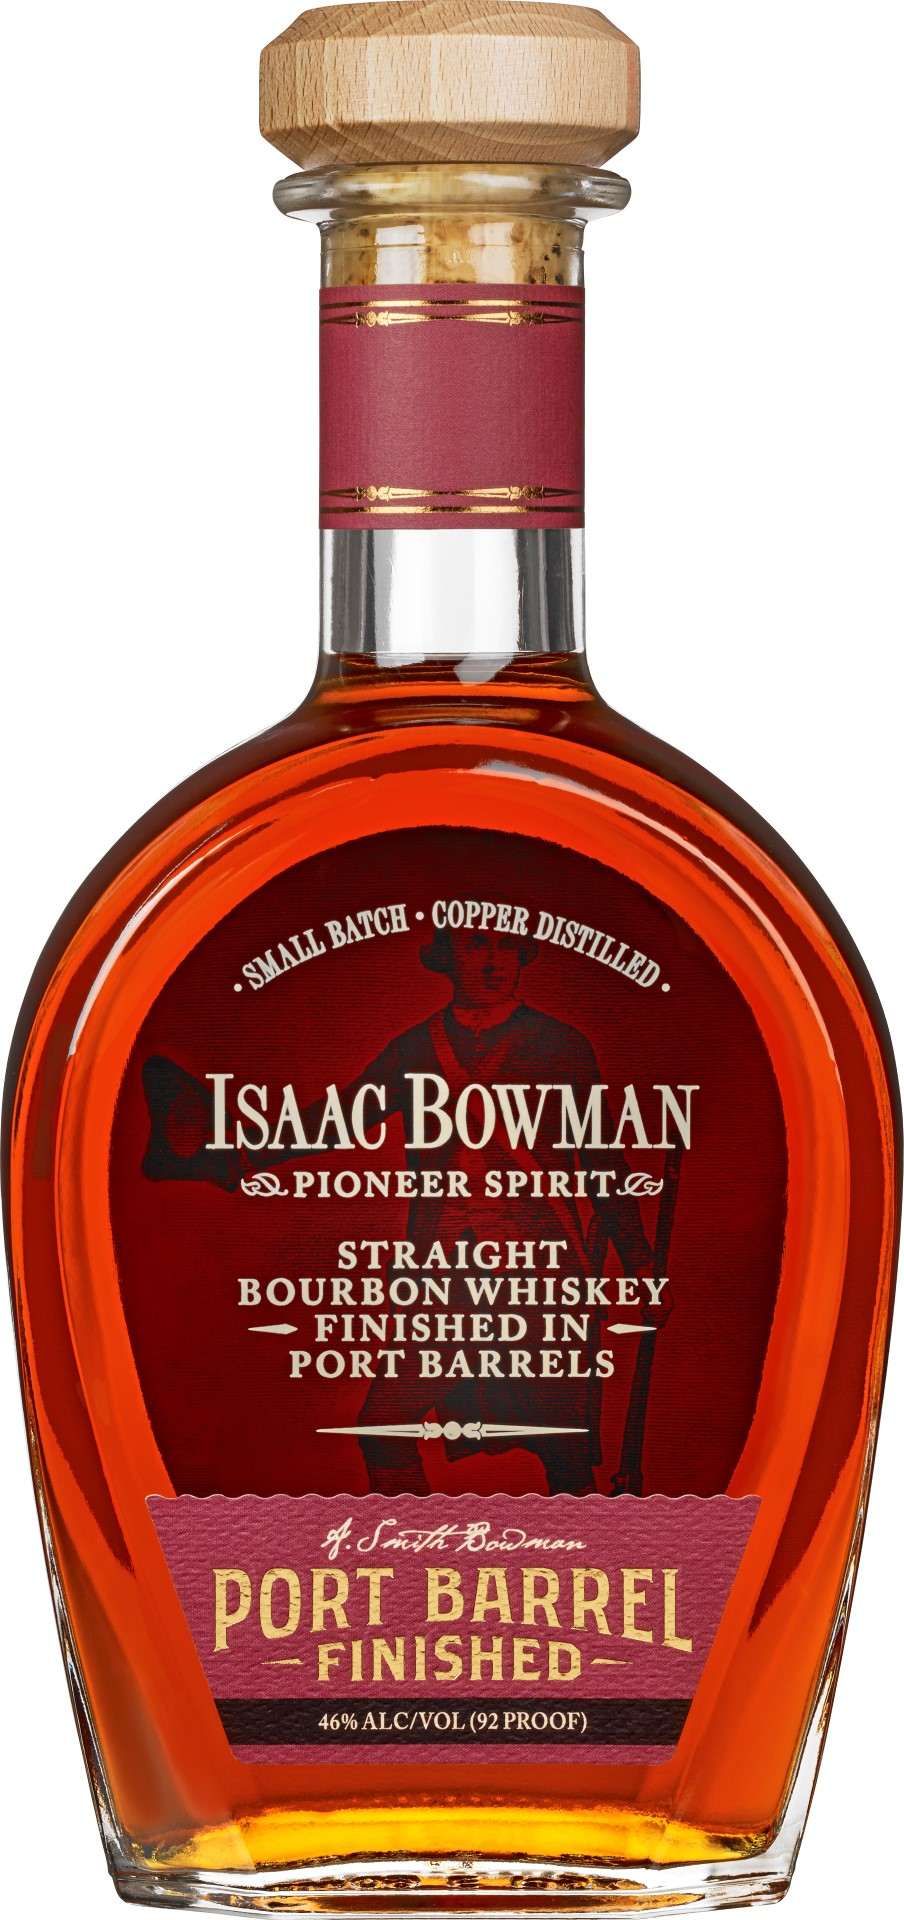 A. Smith Bowman Isaac Bowman Port-Barrel Finished Bourbon